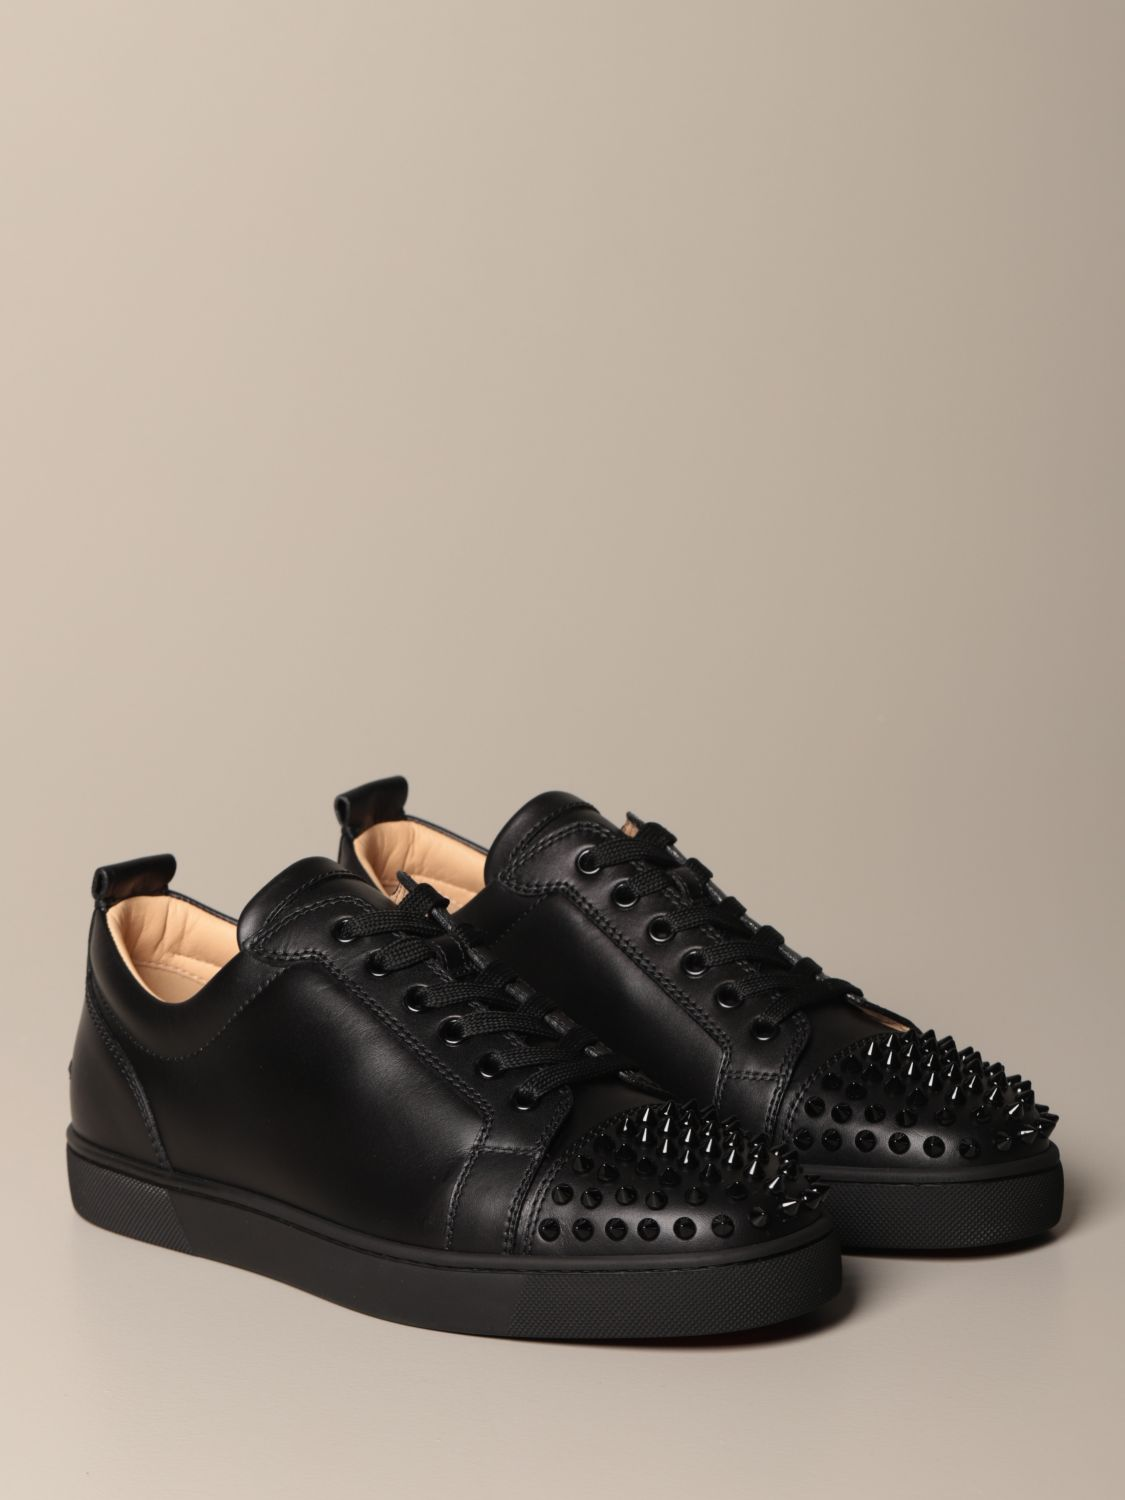 Sneakers Christian Louboutin: Christian Louboutin Louis Junior sneakers in studded leather black 2